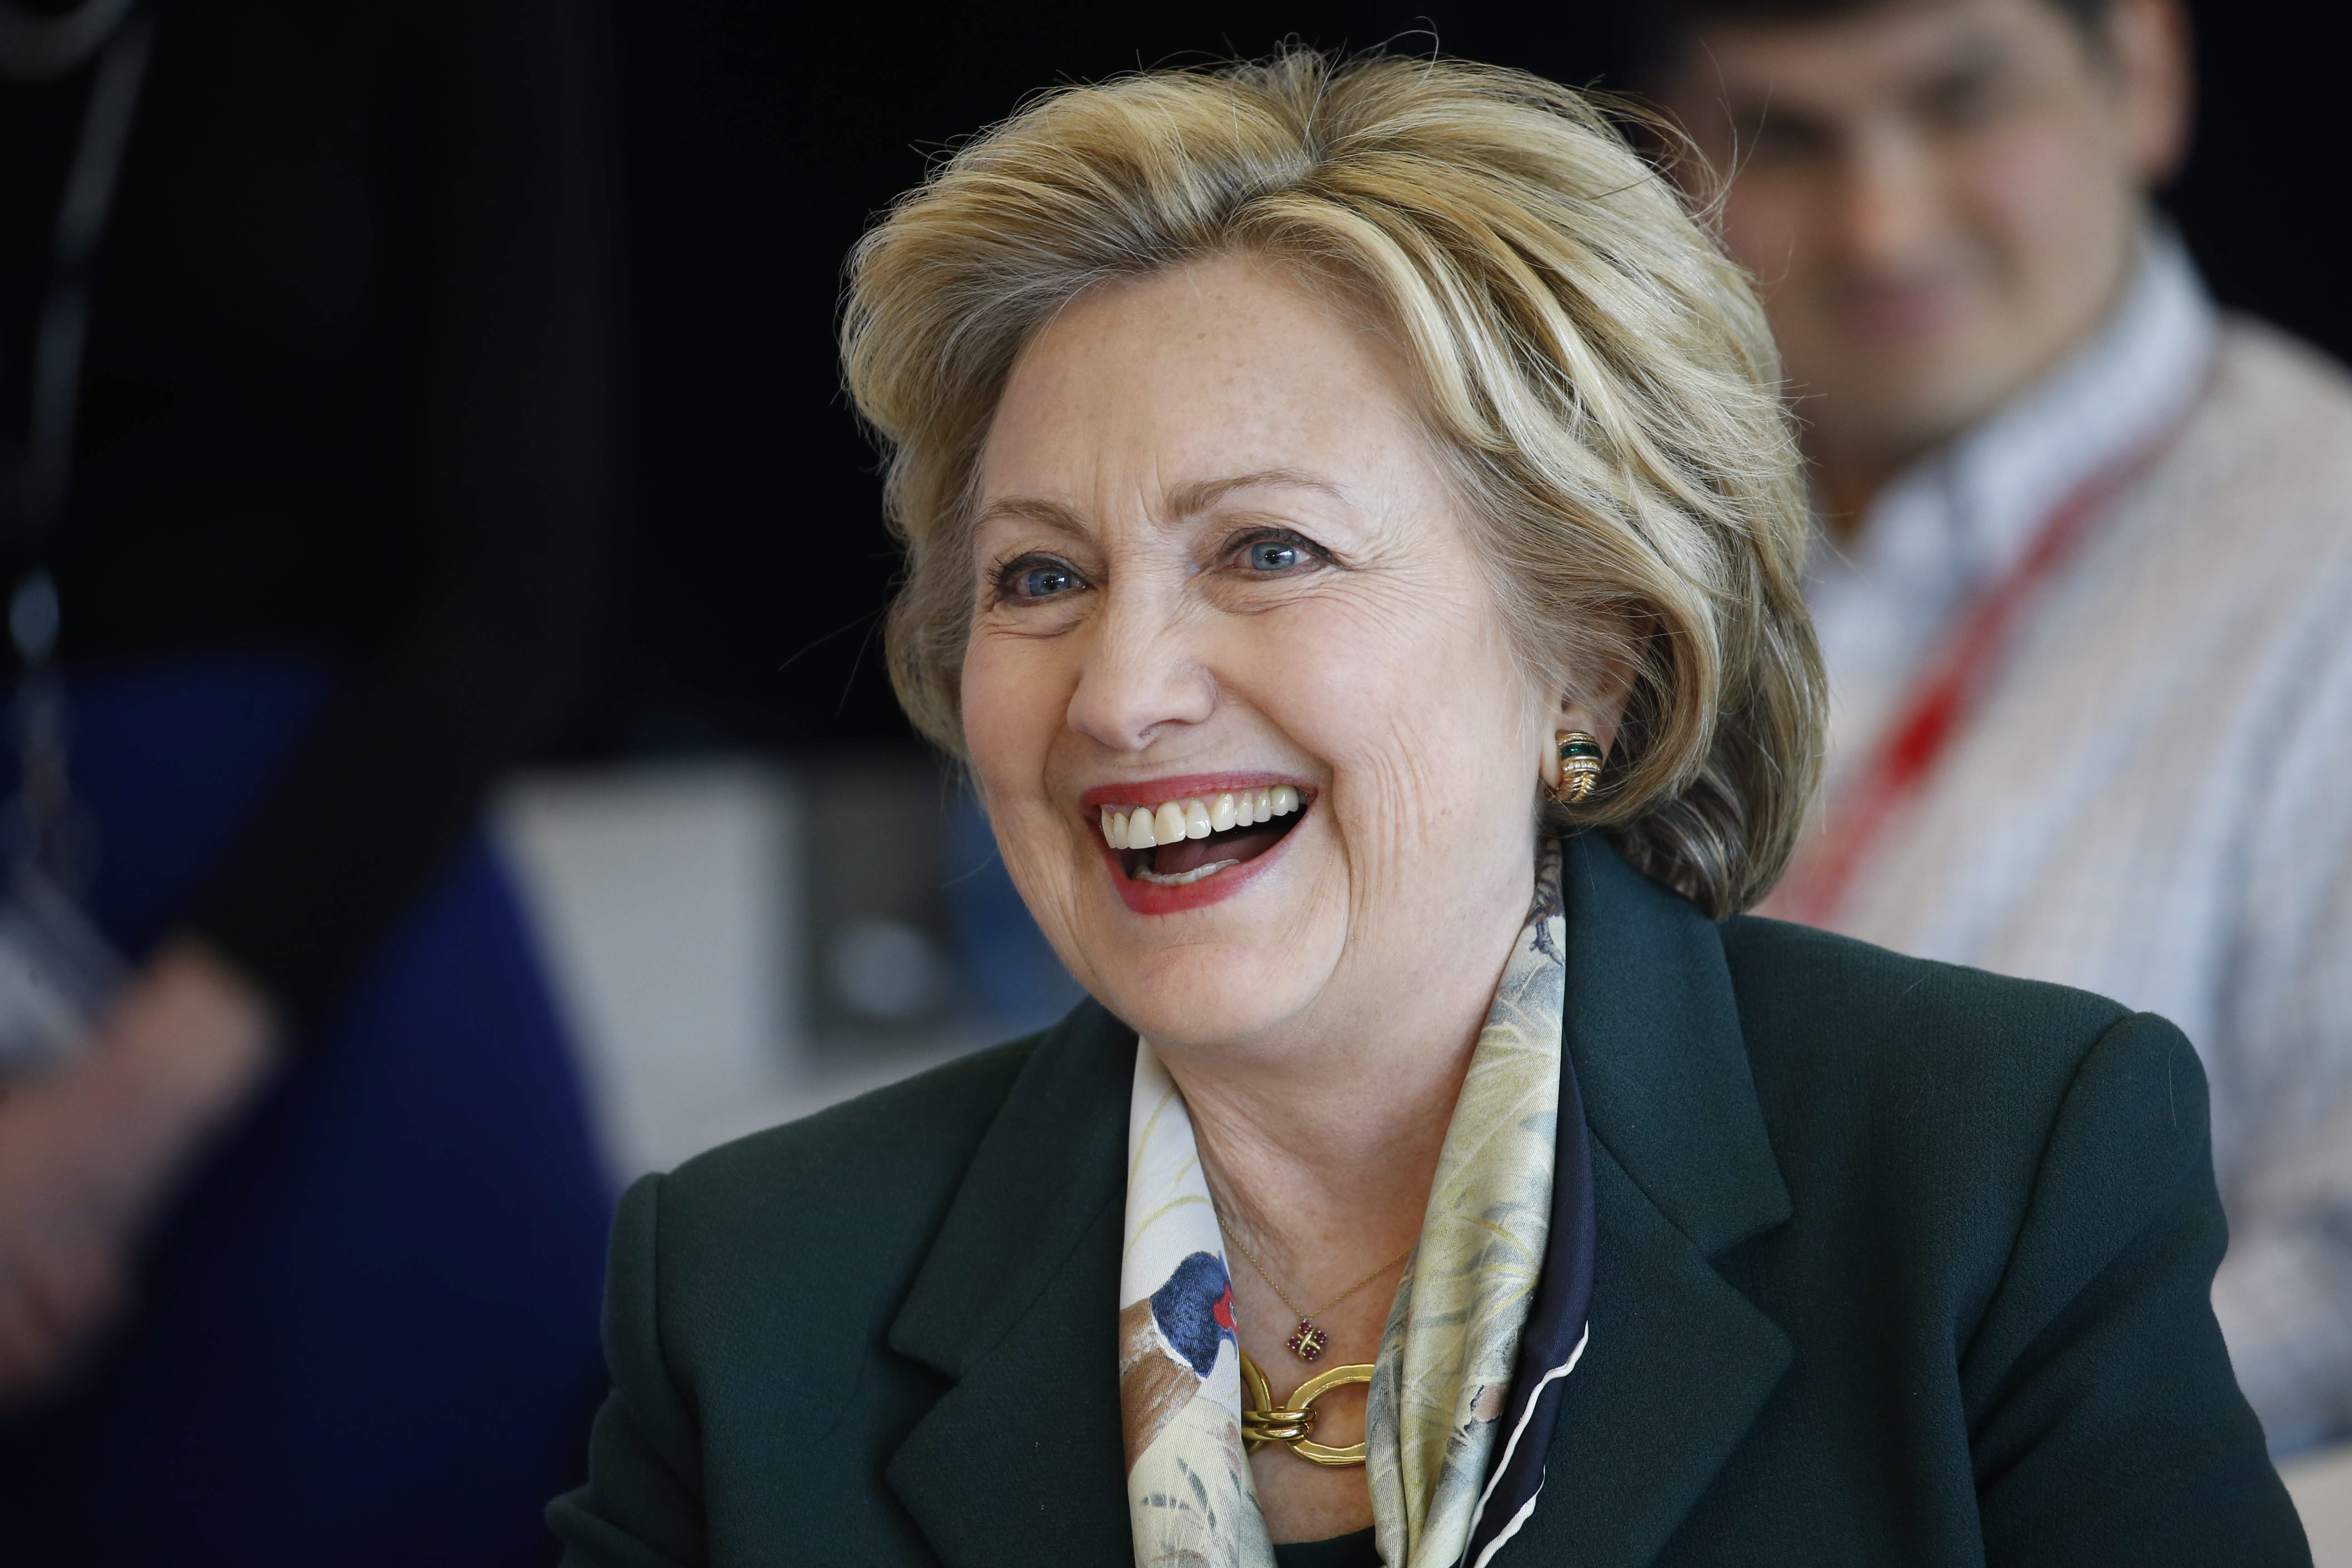 Clinton officially clinches Democratic nomination, making history